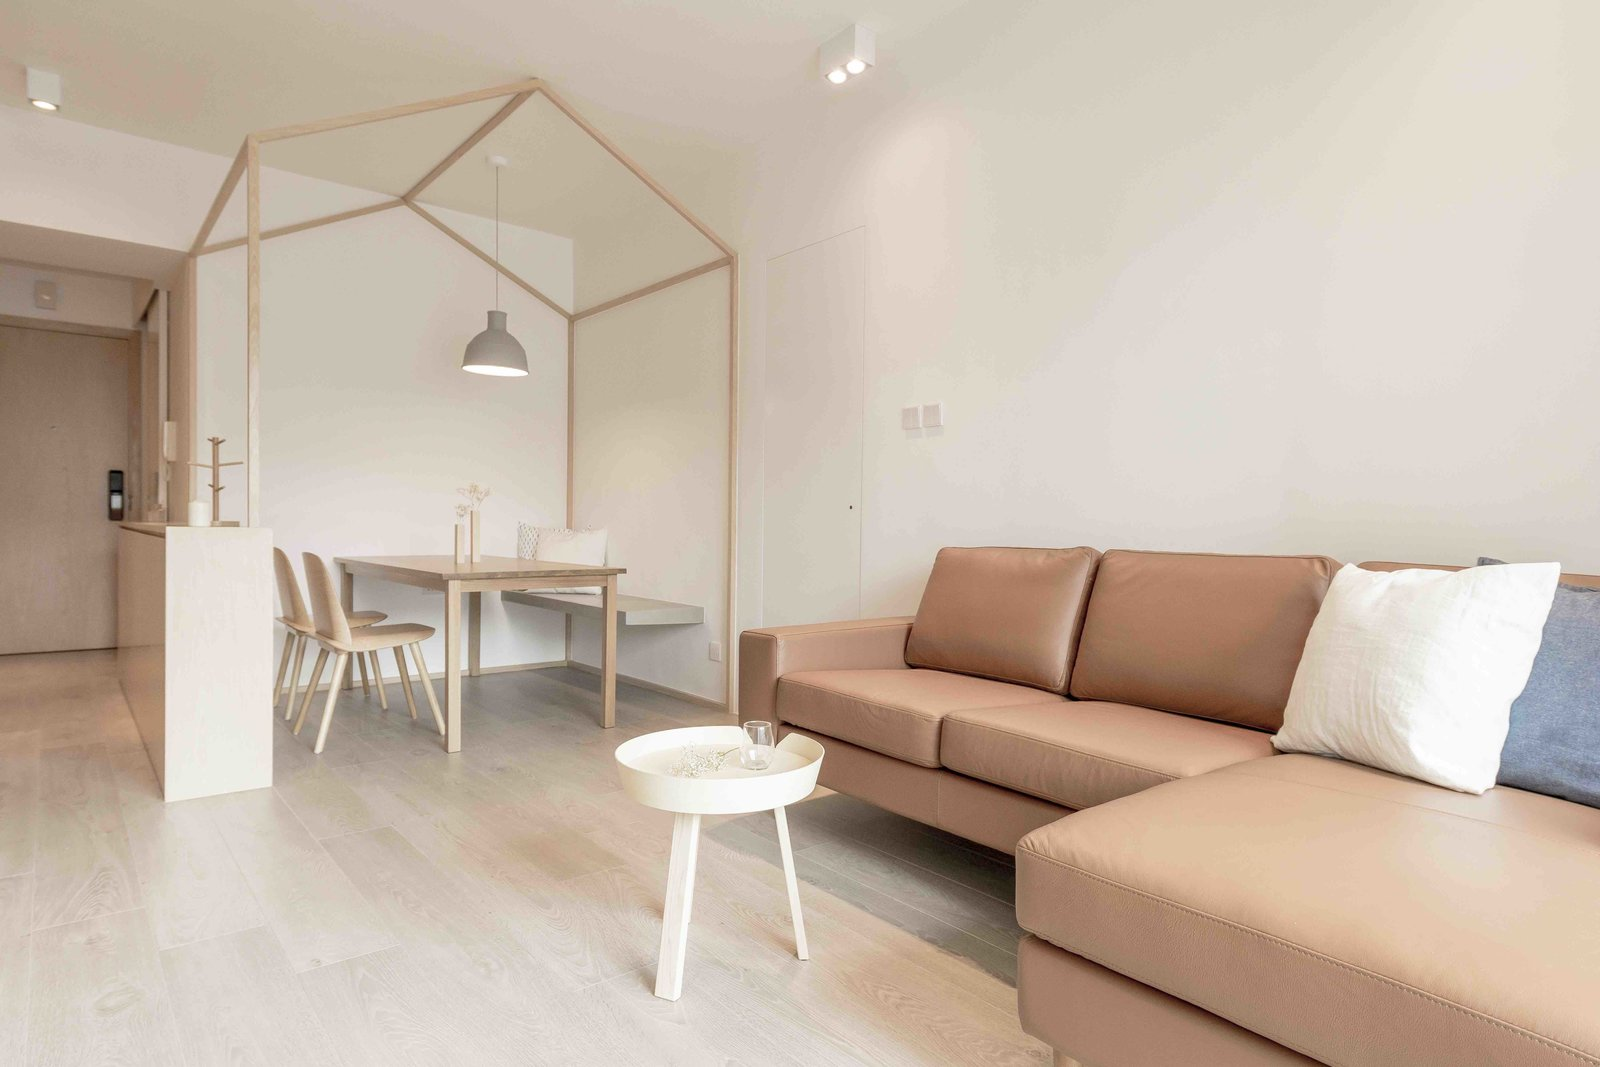 Sofa, Sectional, End Tables, Dining, Ceiling, Light Hardwood, Chair, Bench, Pendant, and Table  Dining End Tables Bench Photos from An Origami-Inspired Apartment in Hong Kong With Tons of Smart Storage